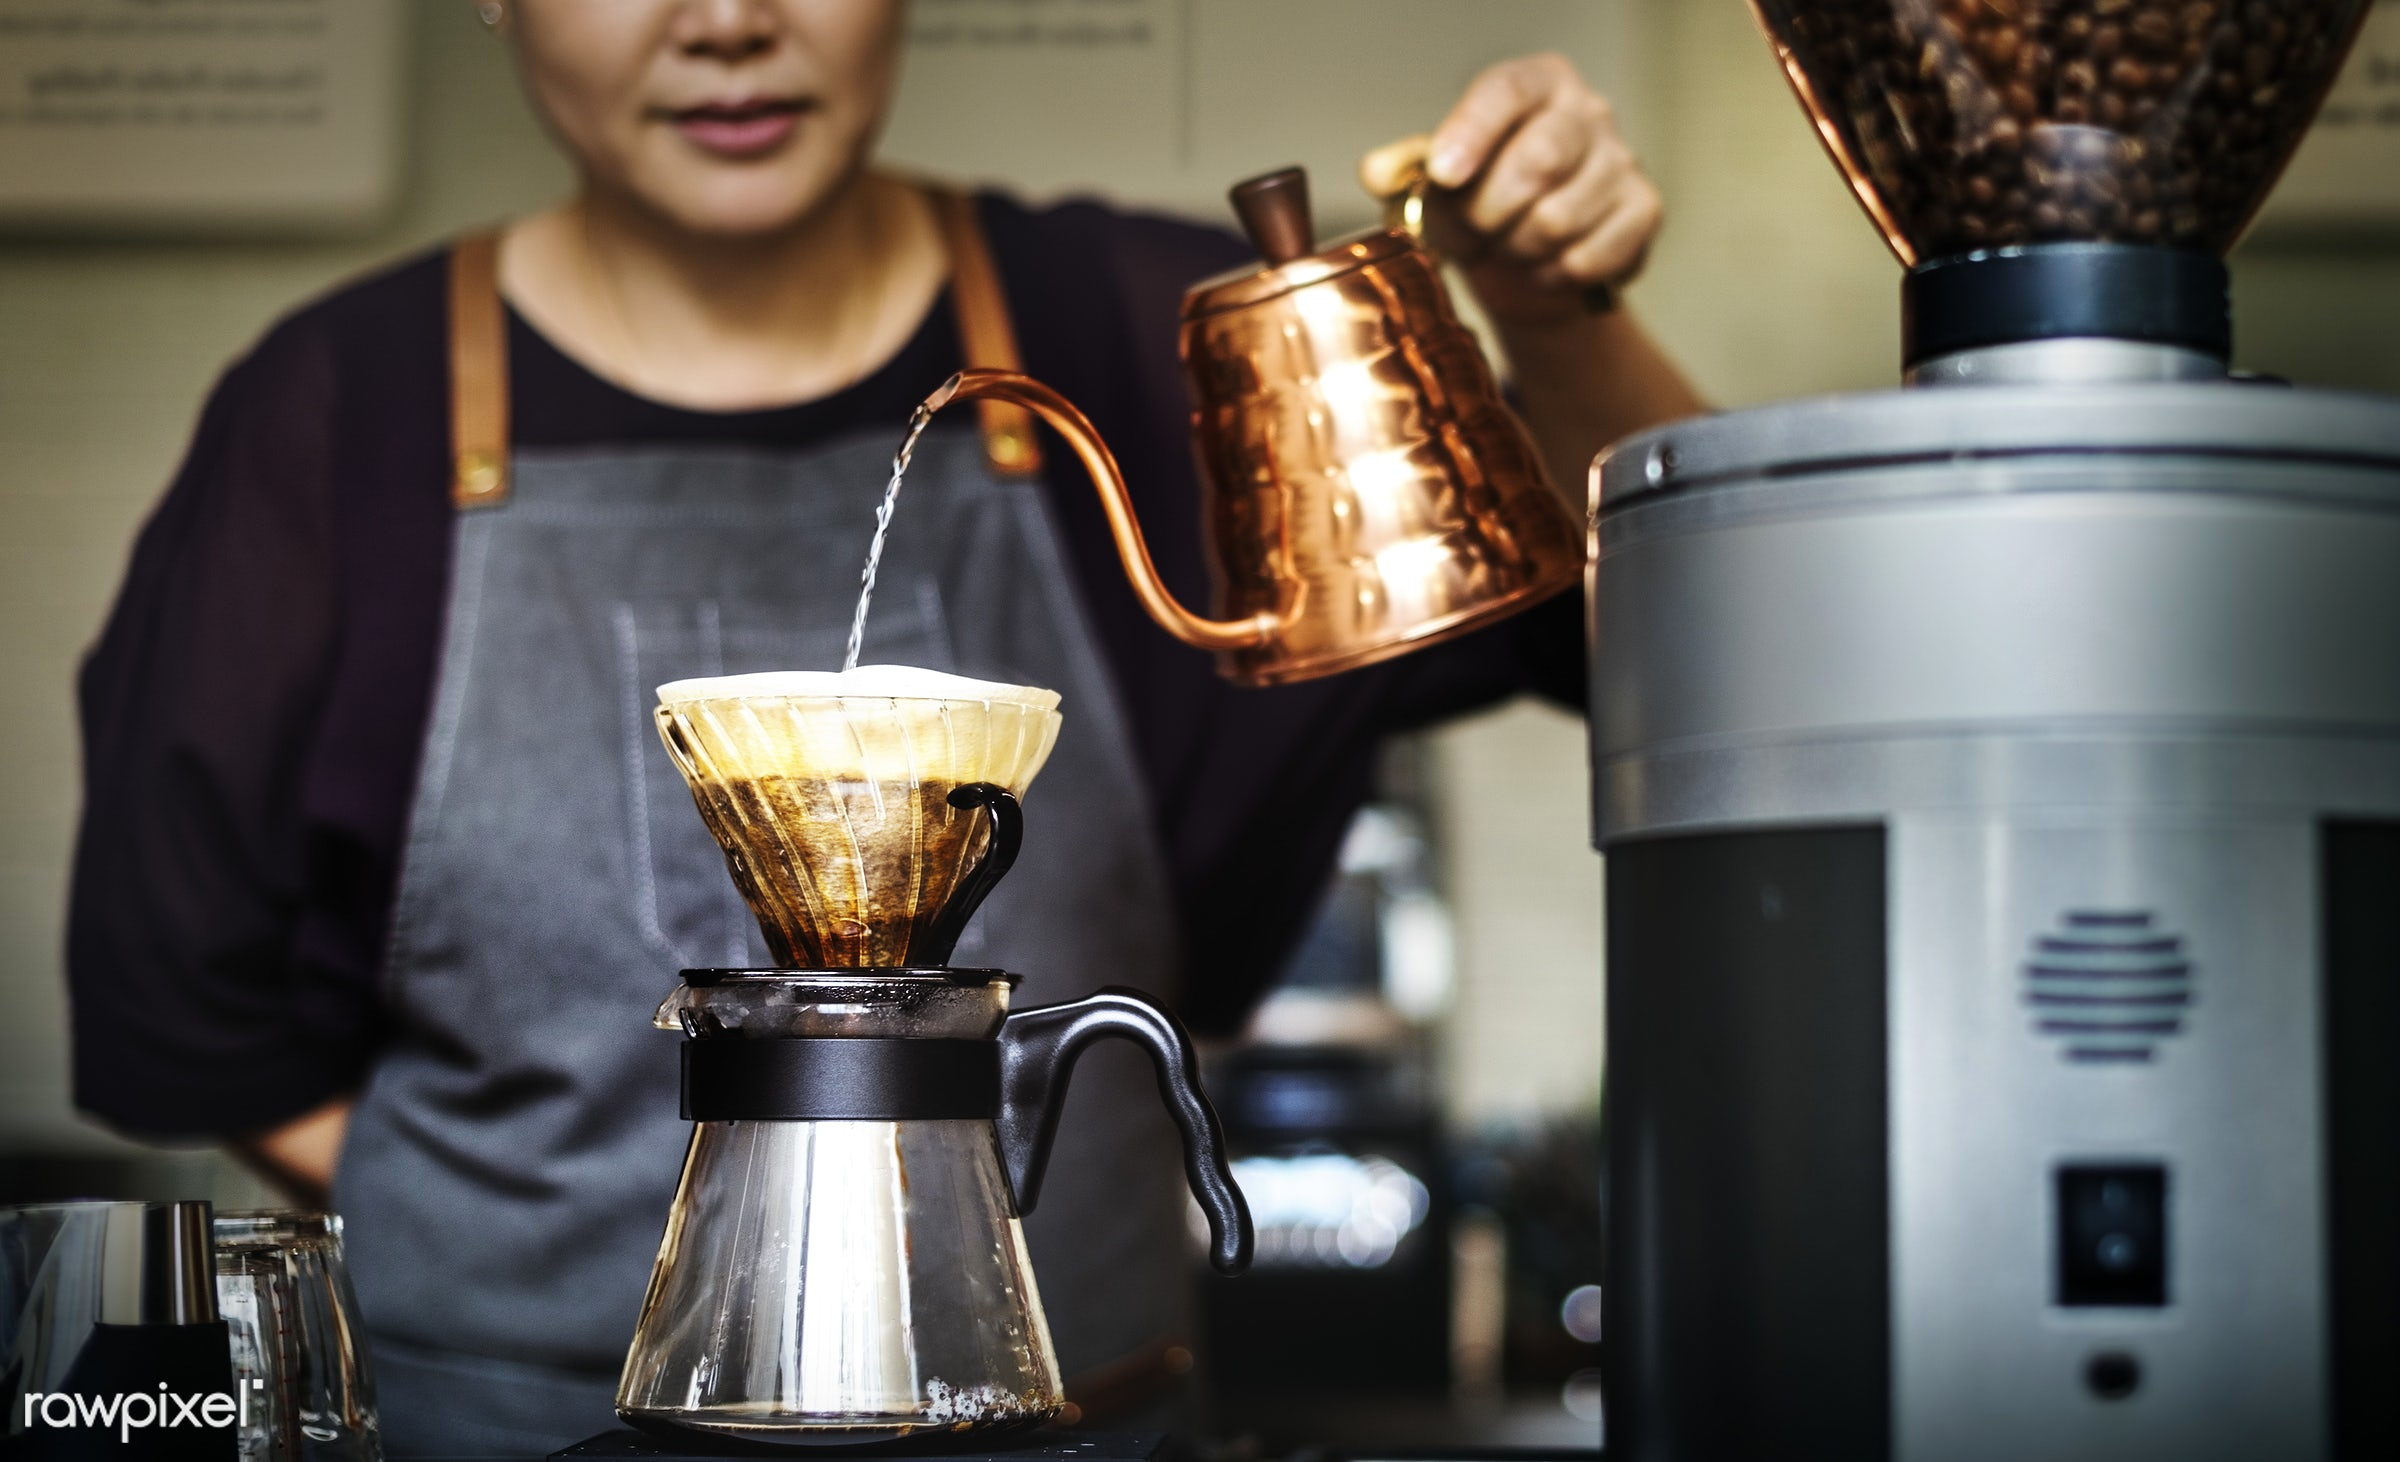 appliance, apron, attractive, bar, barista, brew, business, cafe, cafeteria, coffee, coffee mill, coffee shop, counter, cup...